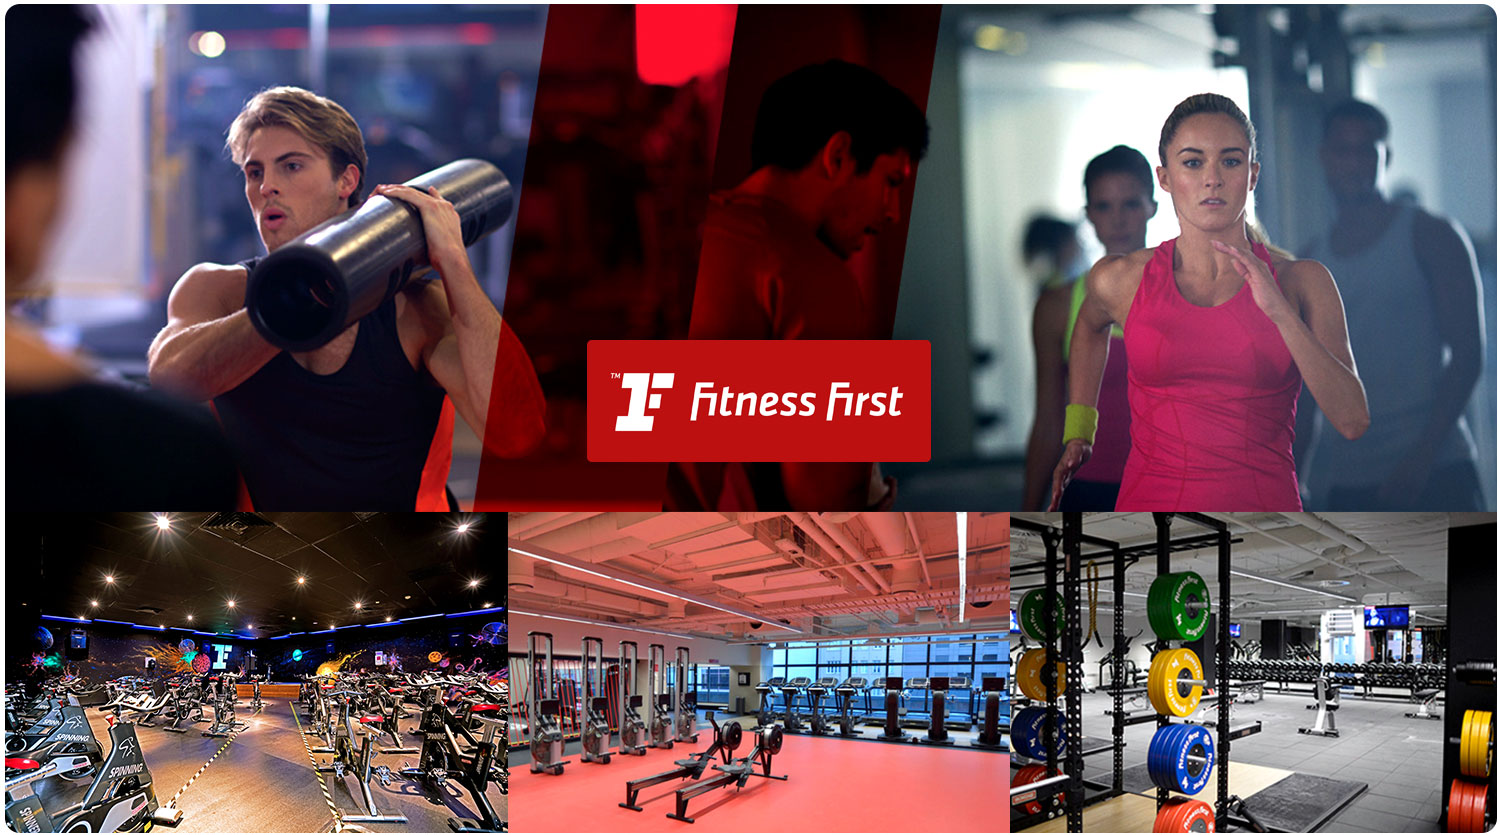 Start your Fitness Journey with Fitness First with only $9.95 for 1 week at Fitness First Brighton. Experience our first class gym and freestyle classes inc. Yoga, Pilates, Boxing, HIIT, Les Mills and more. Take the first step with Fitness First Brighton.